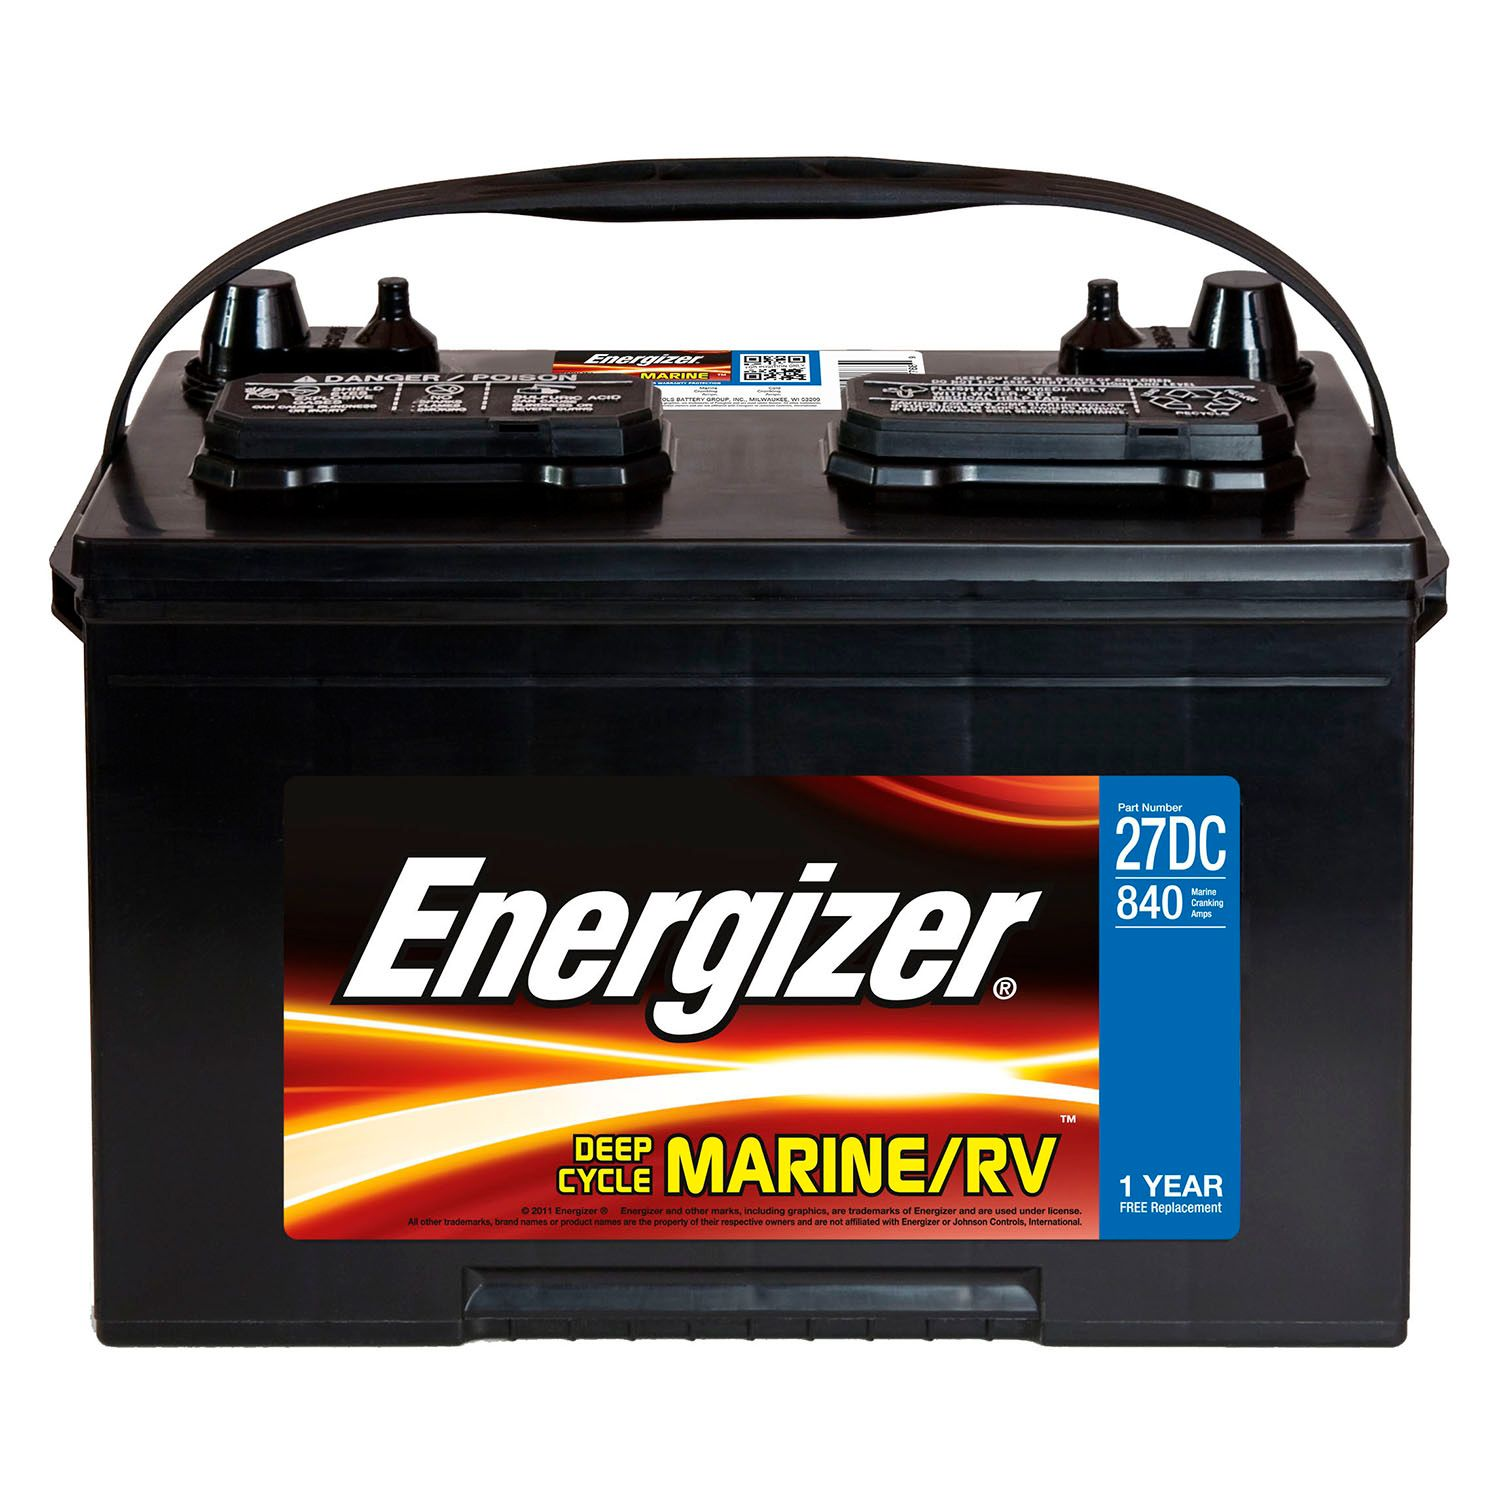 If possible, batteries should be removed from your boat and stored at home where they can take on a trickle charge all winter long.